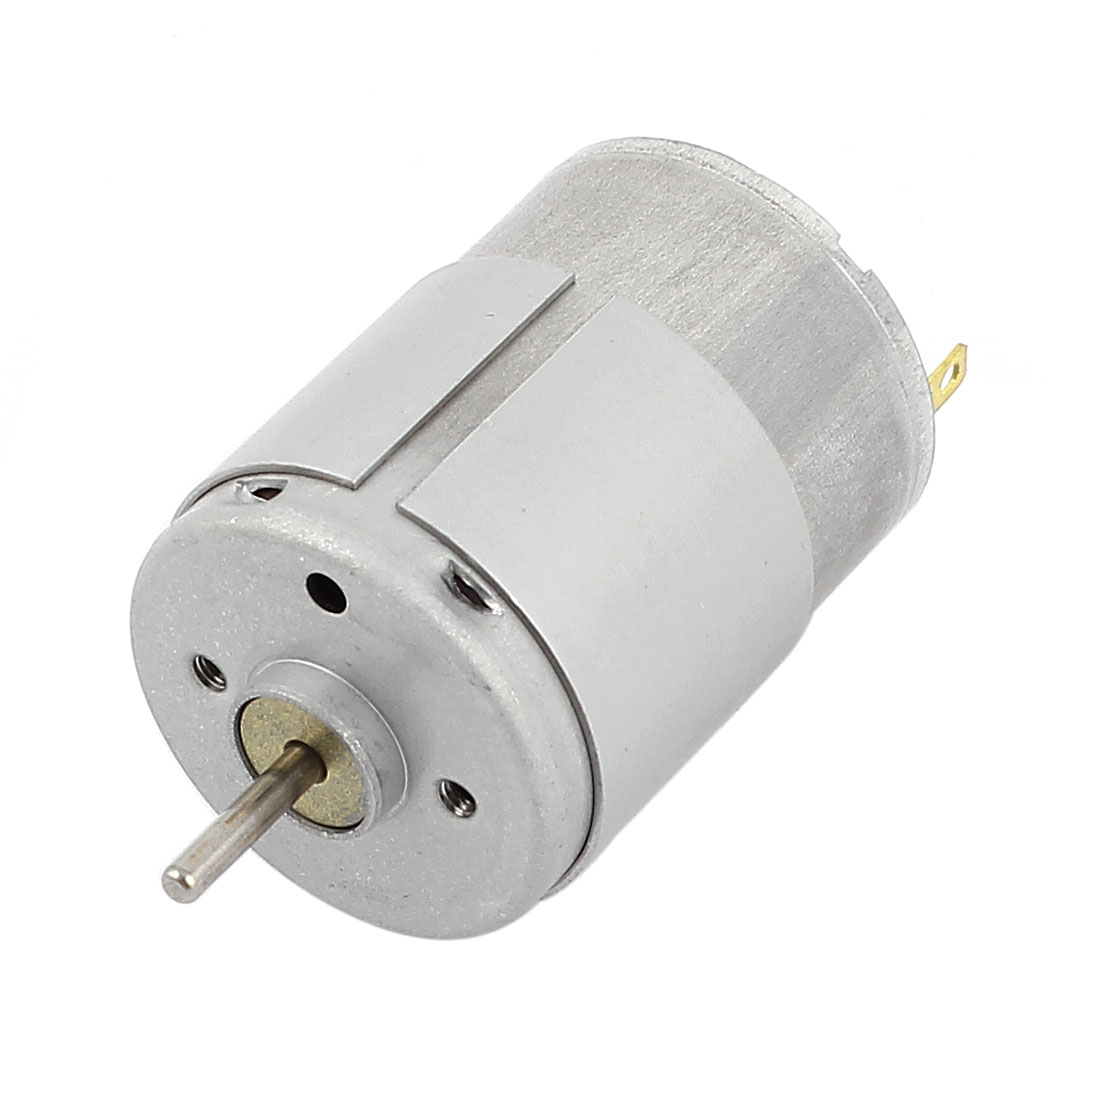 6V 22000RPM High Troque Electric Mini Vibration DC Motor for Hair Dryer